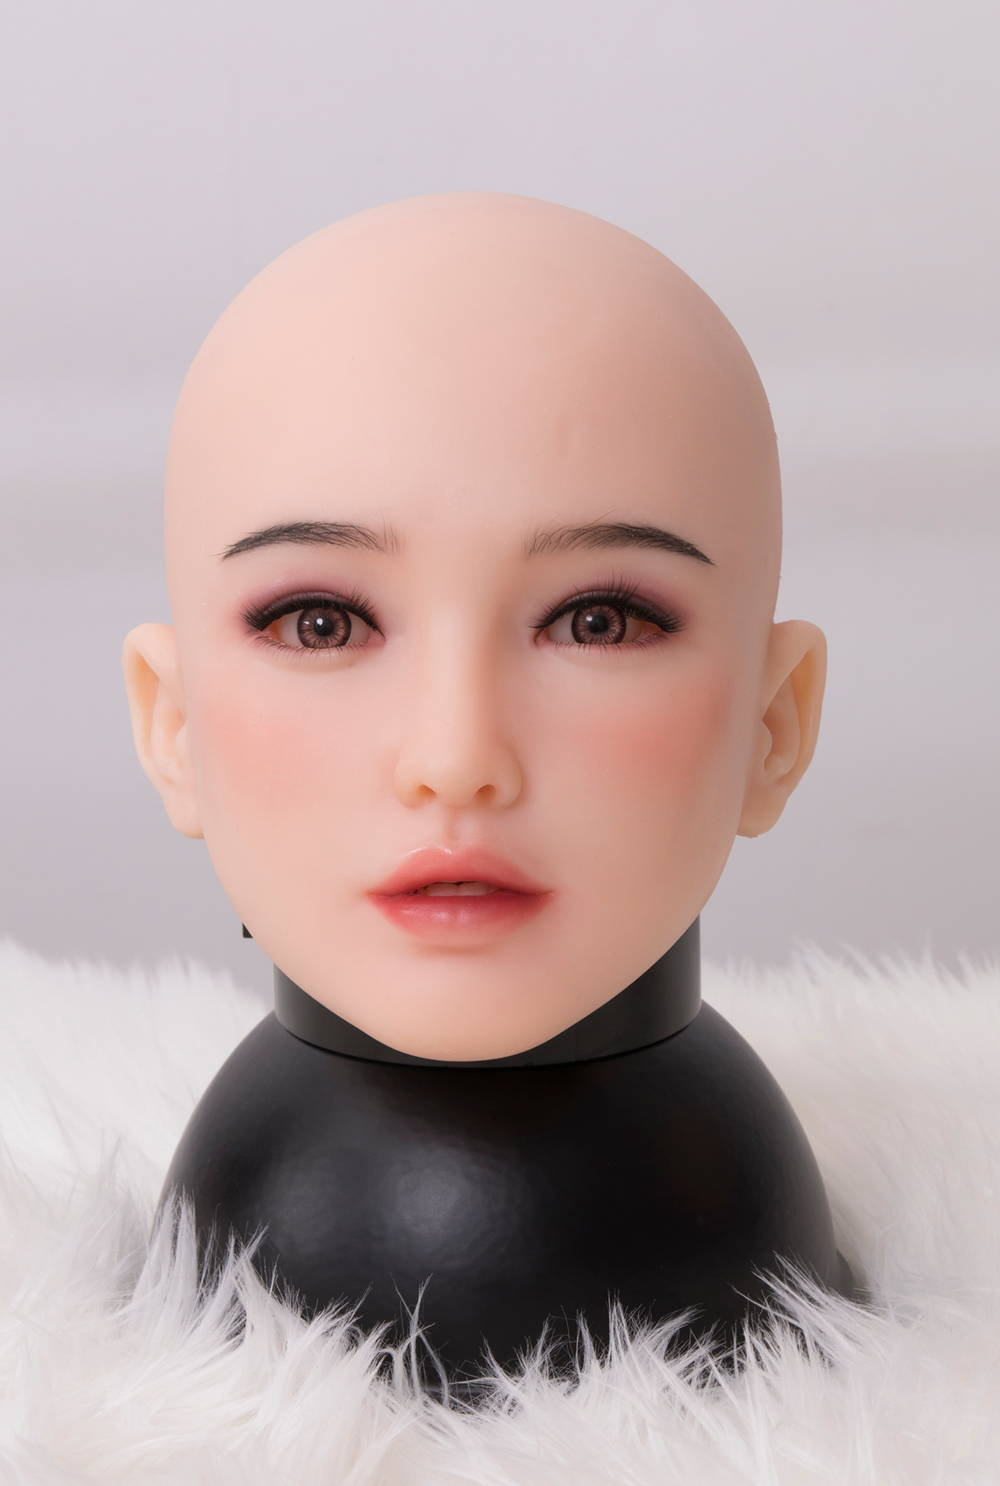 Sino-doll NOrmal Make